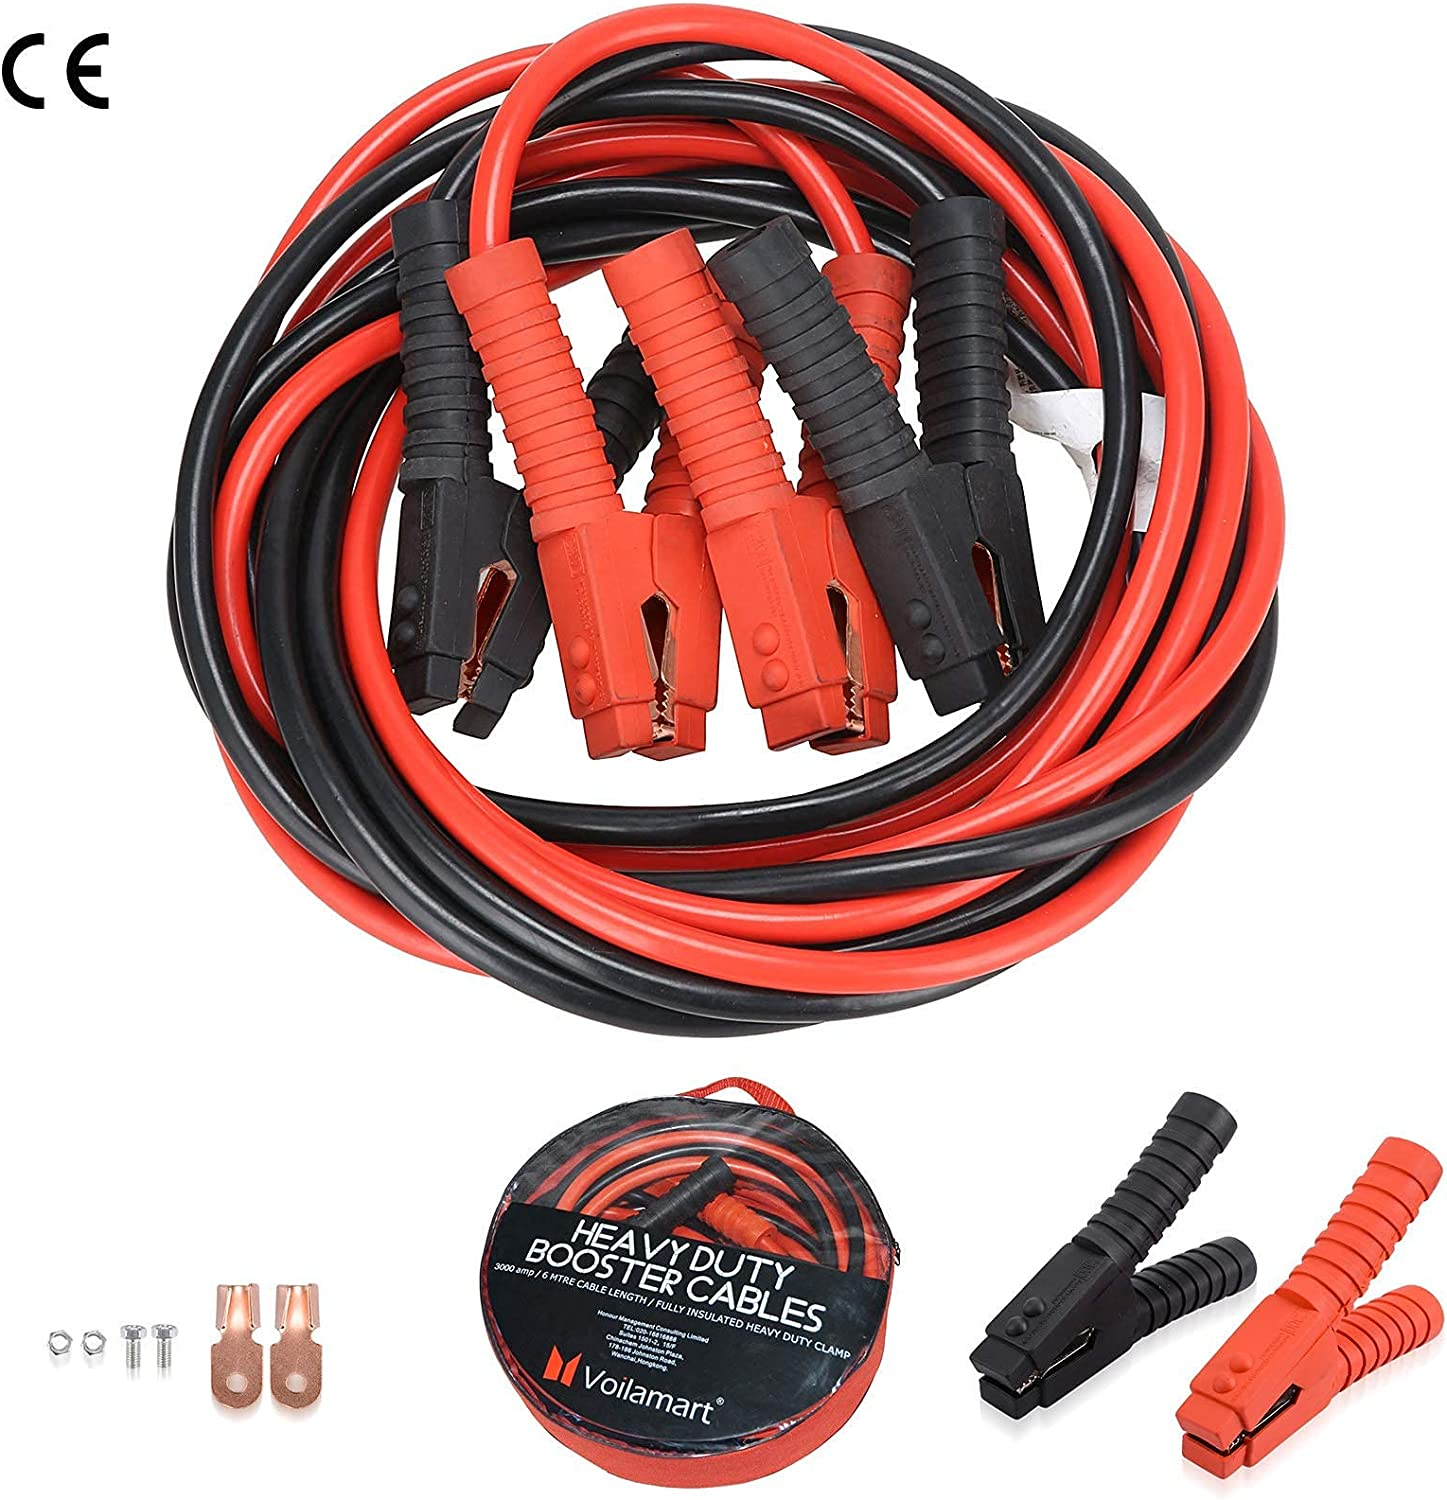 Voilamart Auto Jumper Cables security 2 Gauge 1200AMP Bag Oklahoma City Mall I 20Ft Carry w